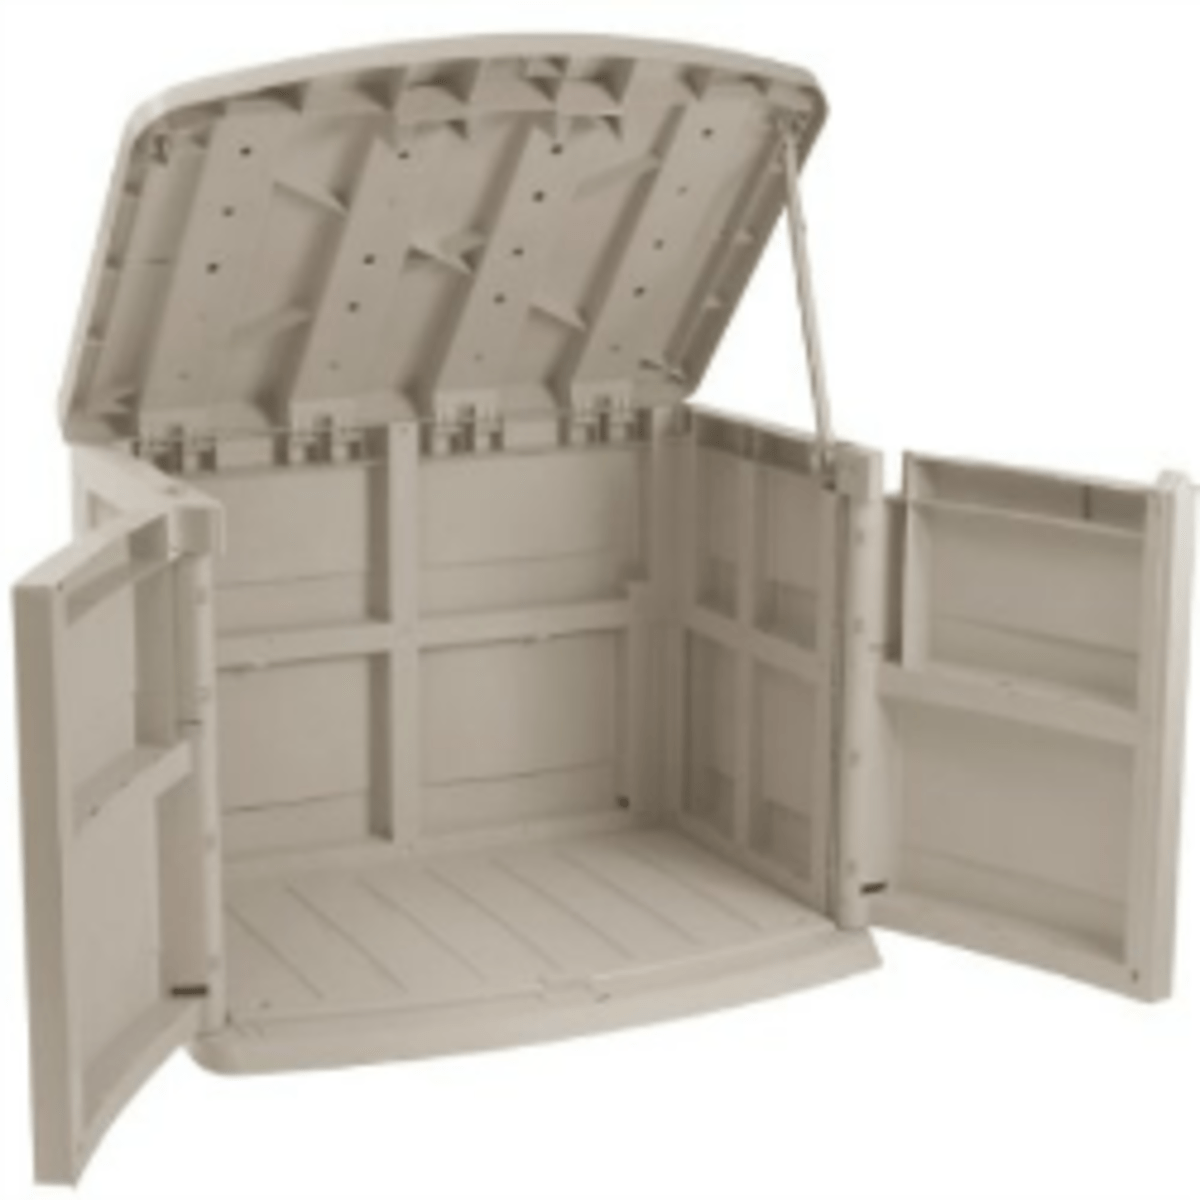 Small Portable Storage Sheds